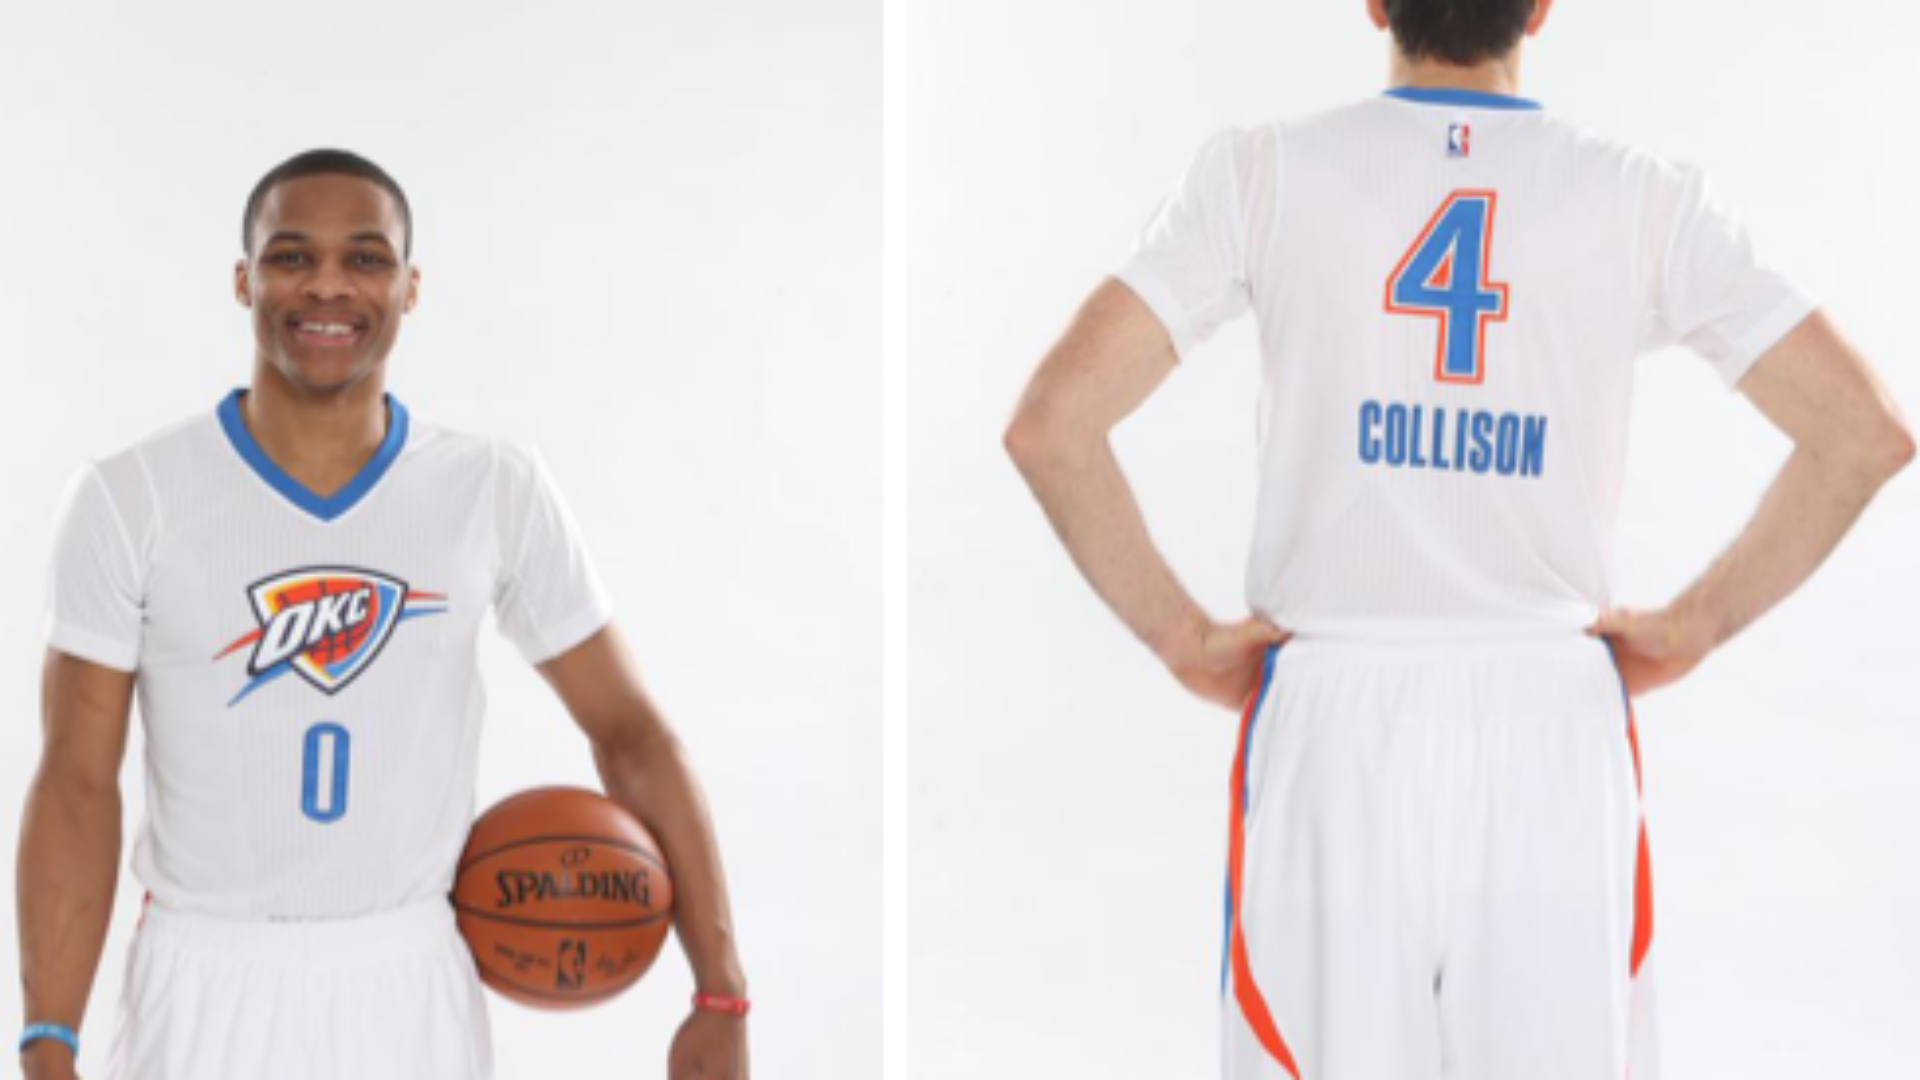 6d88ec70c209 New OKC Thunder sleeved jerseys—airball or slam dunk